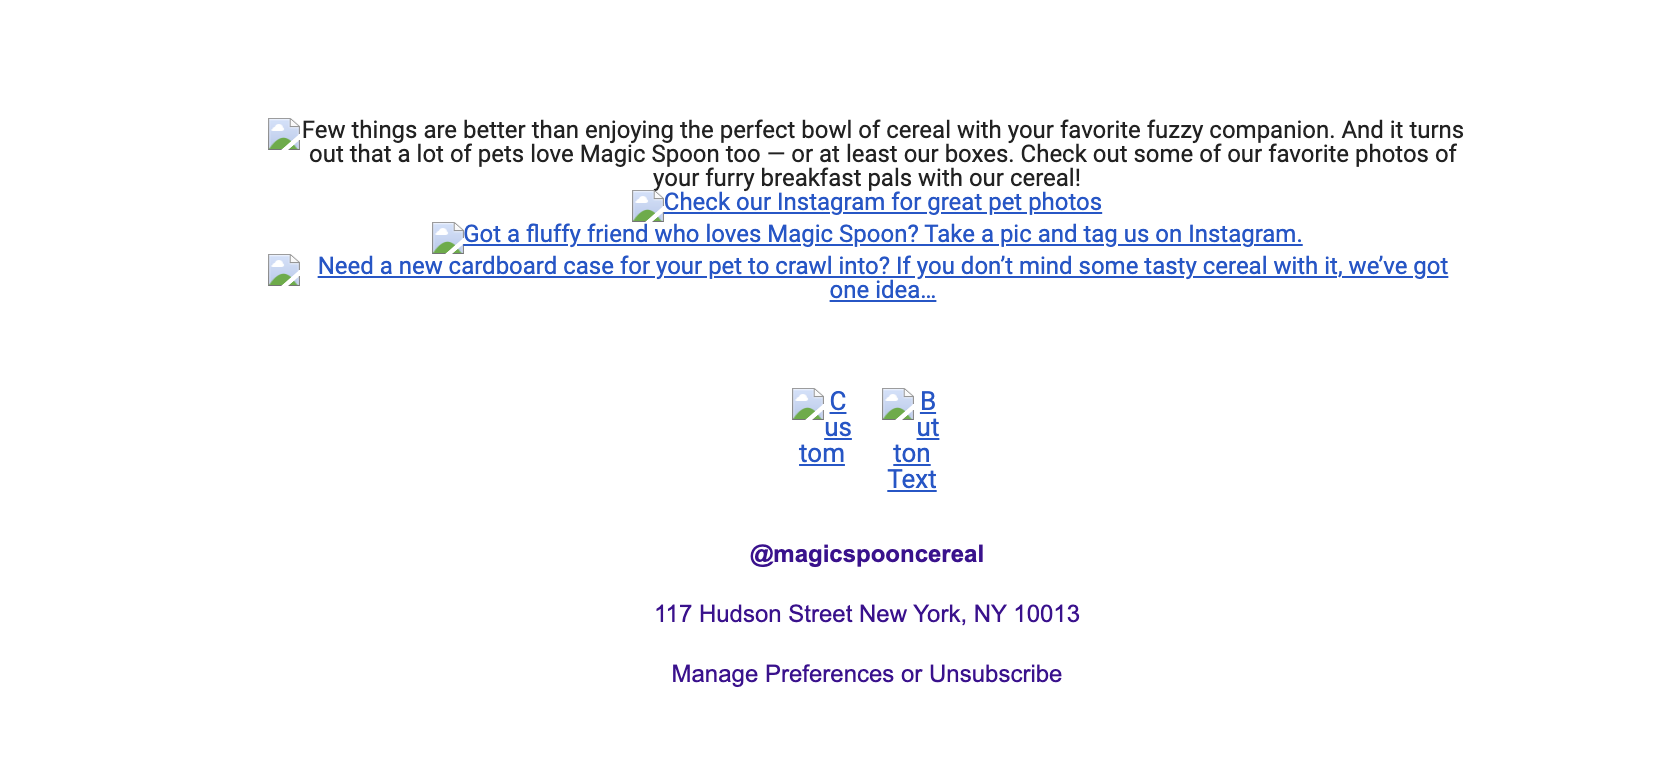 Magic Spoon email with images off